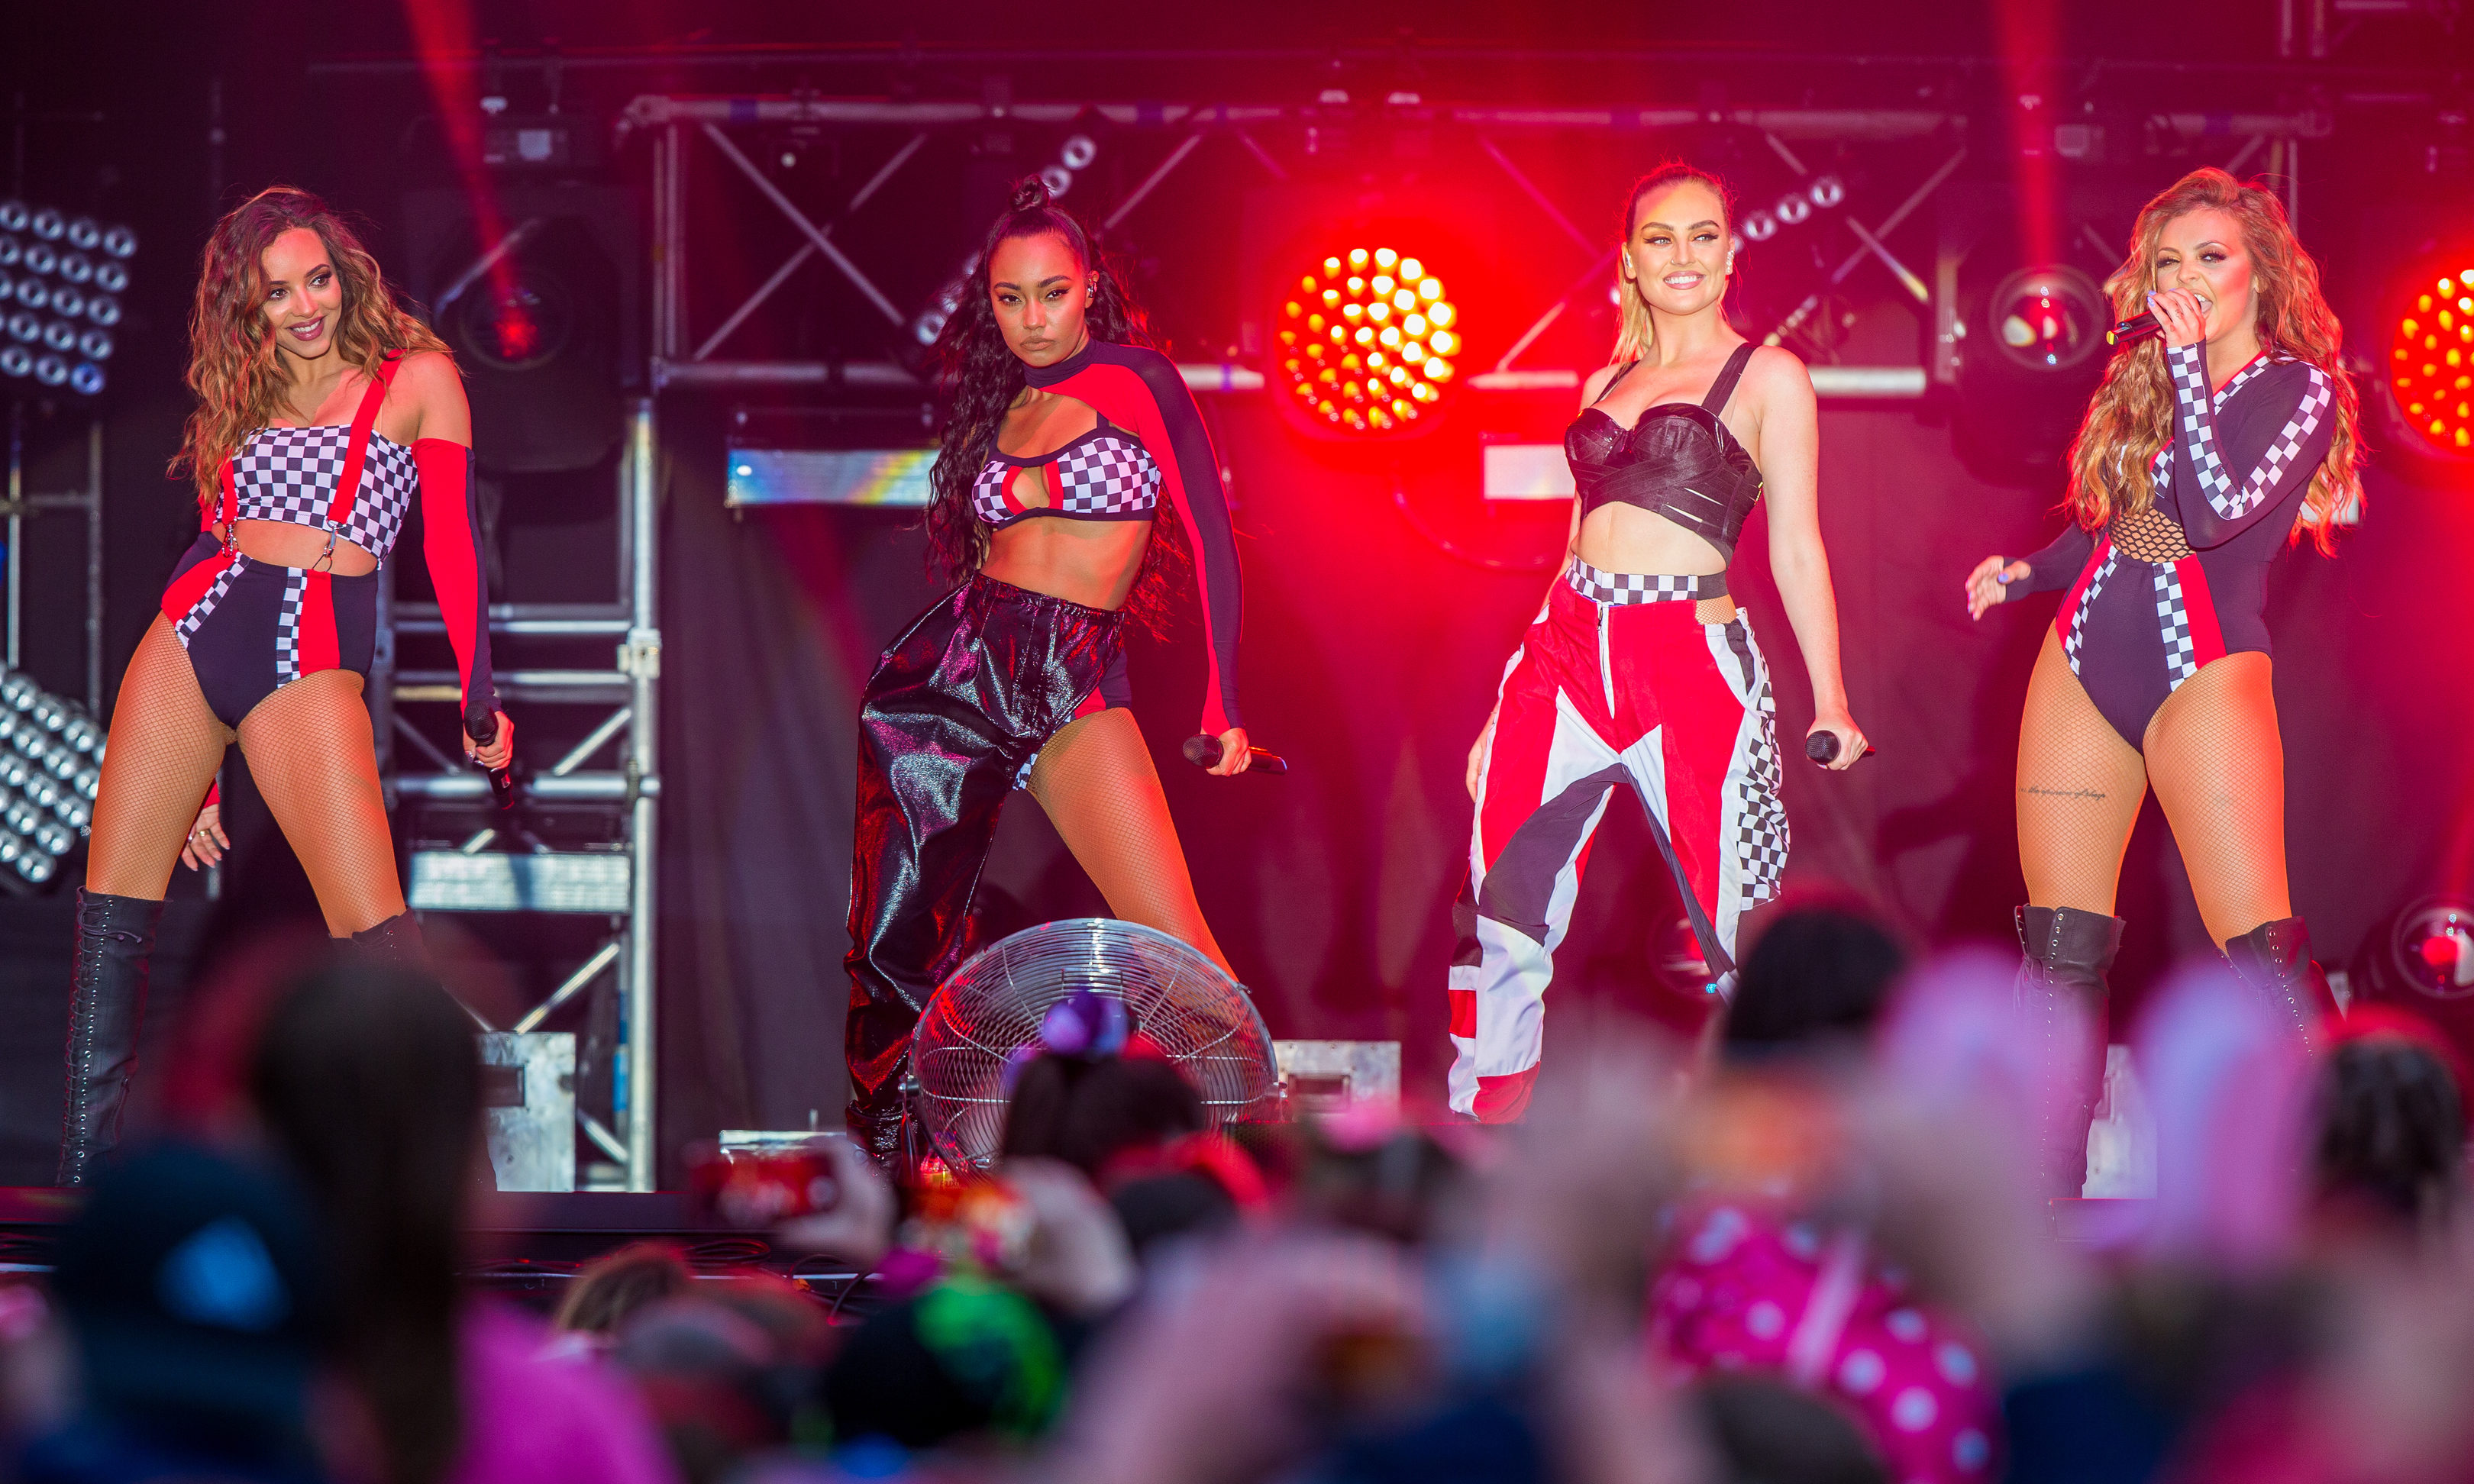 Little Mix at Slessor Gardens in 2017.